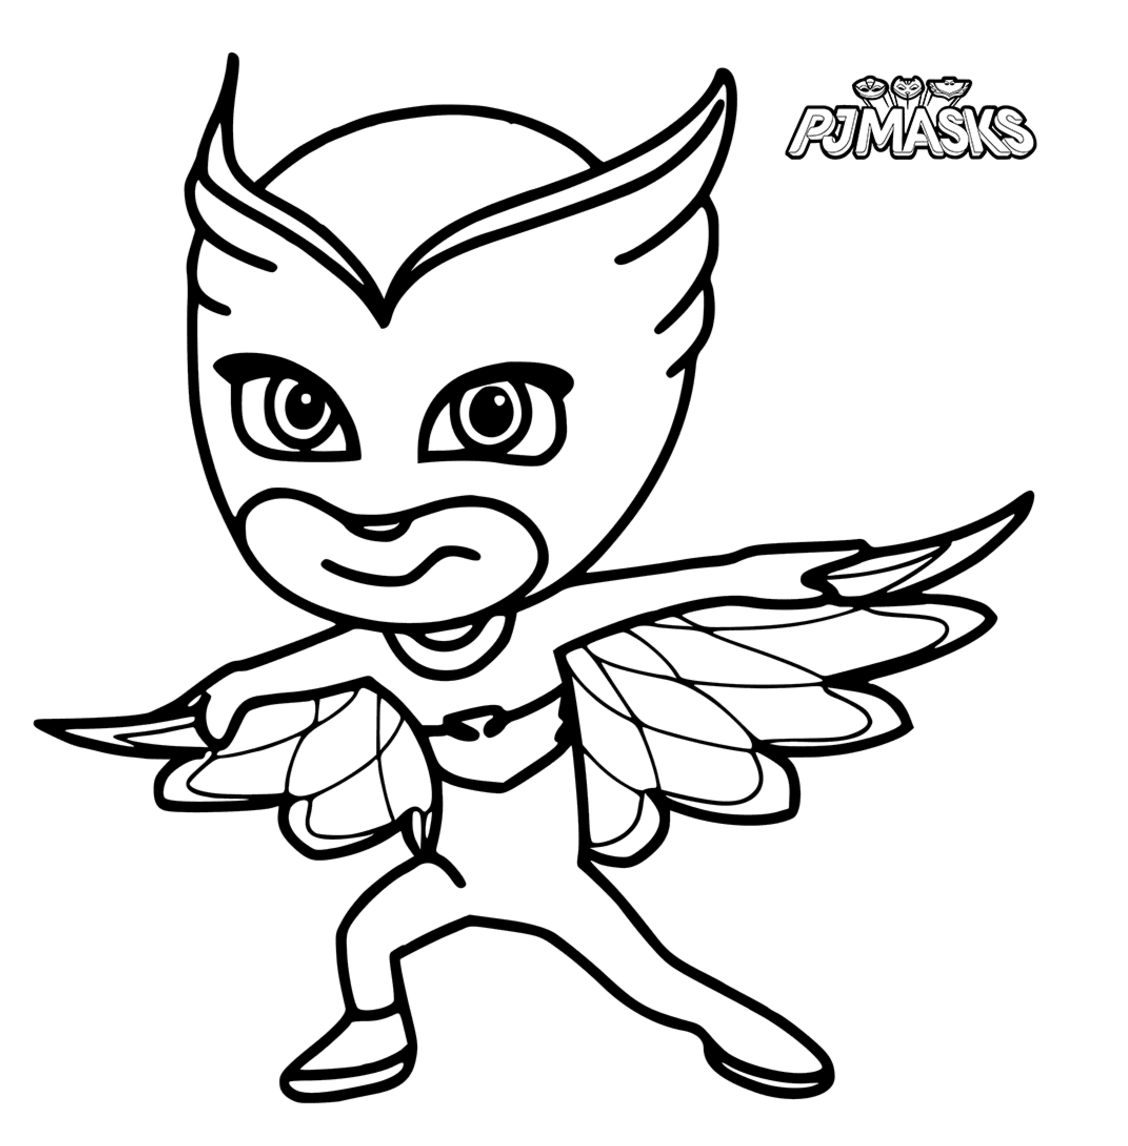 pj masks coloring pages printable PJ Masks Coloring Pages | Kids | Pj masks coloring pages, Pj mask  pj masks coloring pages printable